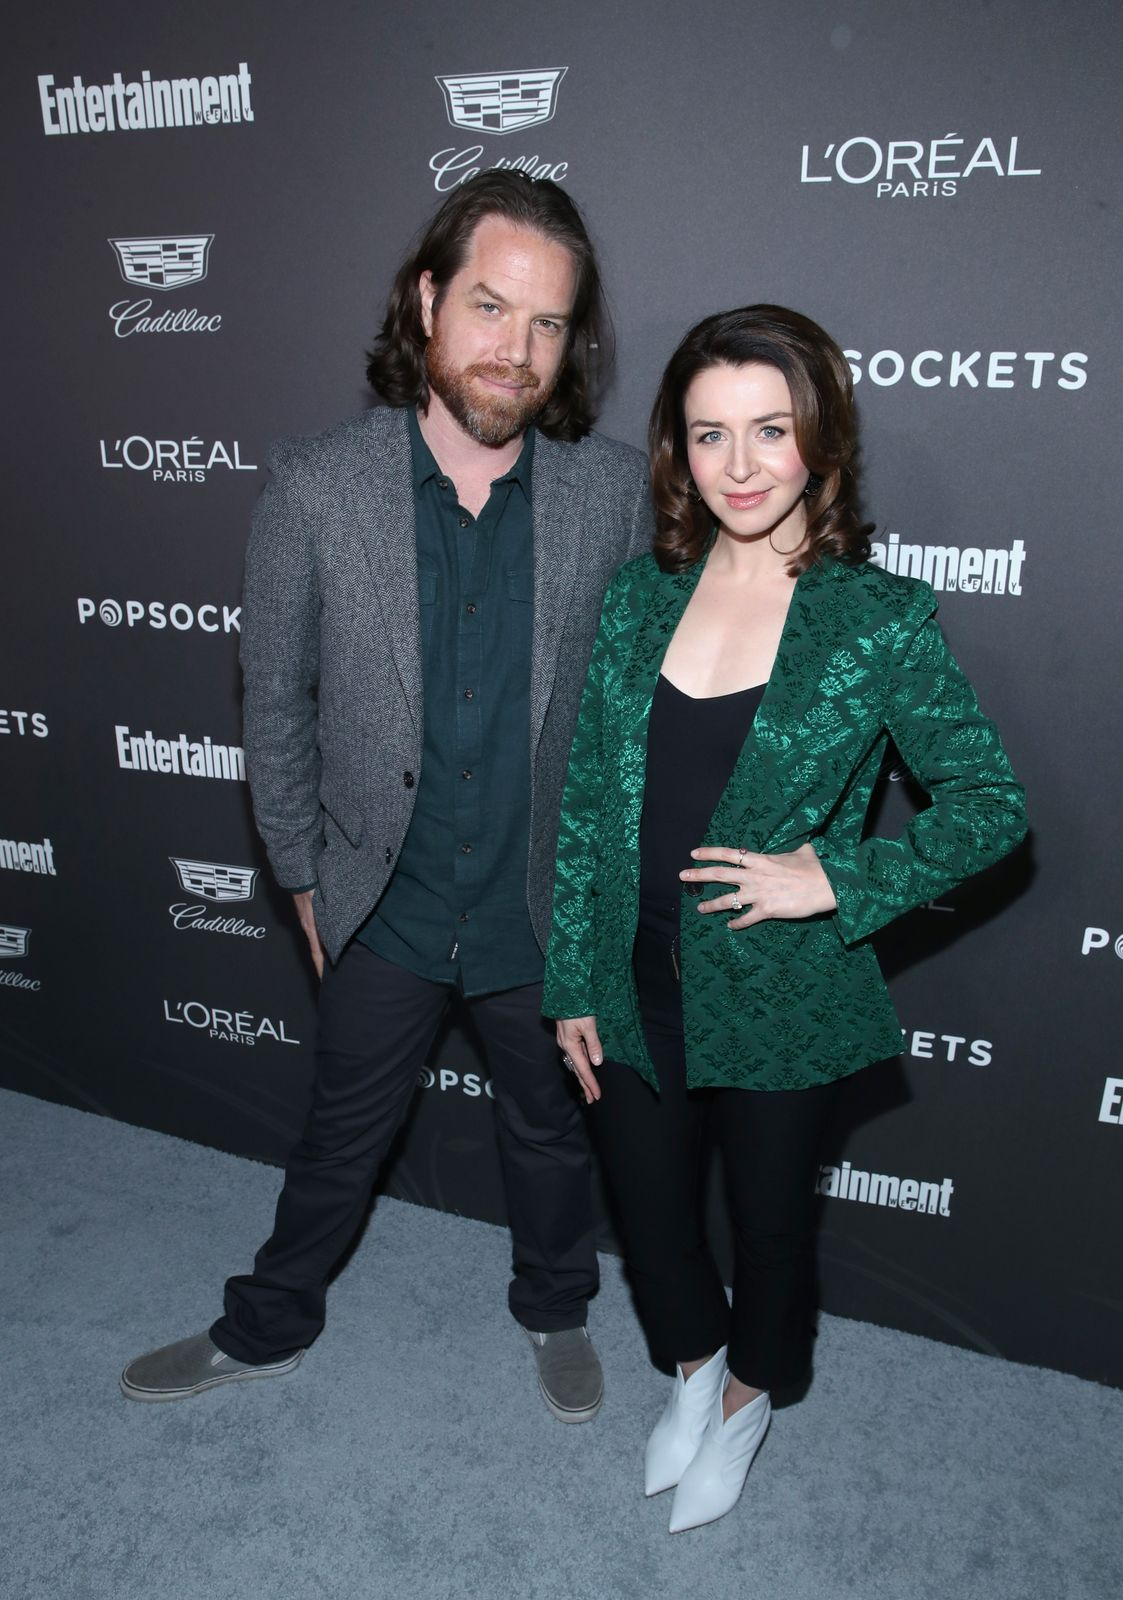 Caterina Scorsone and Rob Giles/Photo:Getty Images